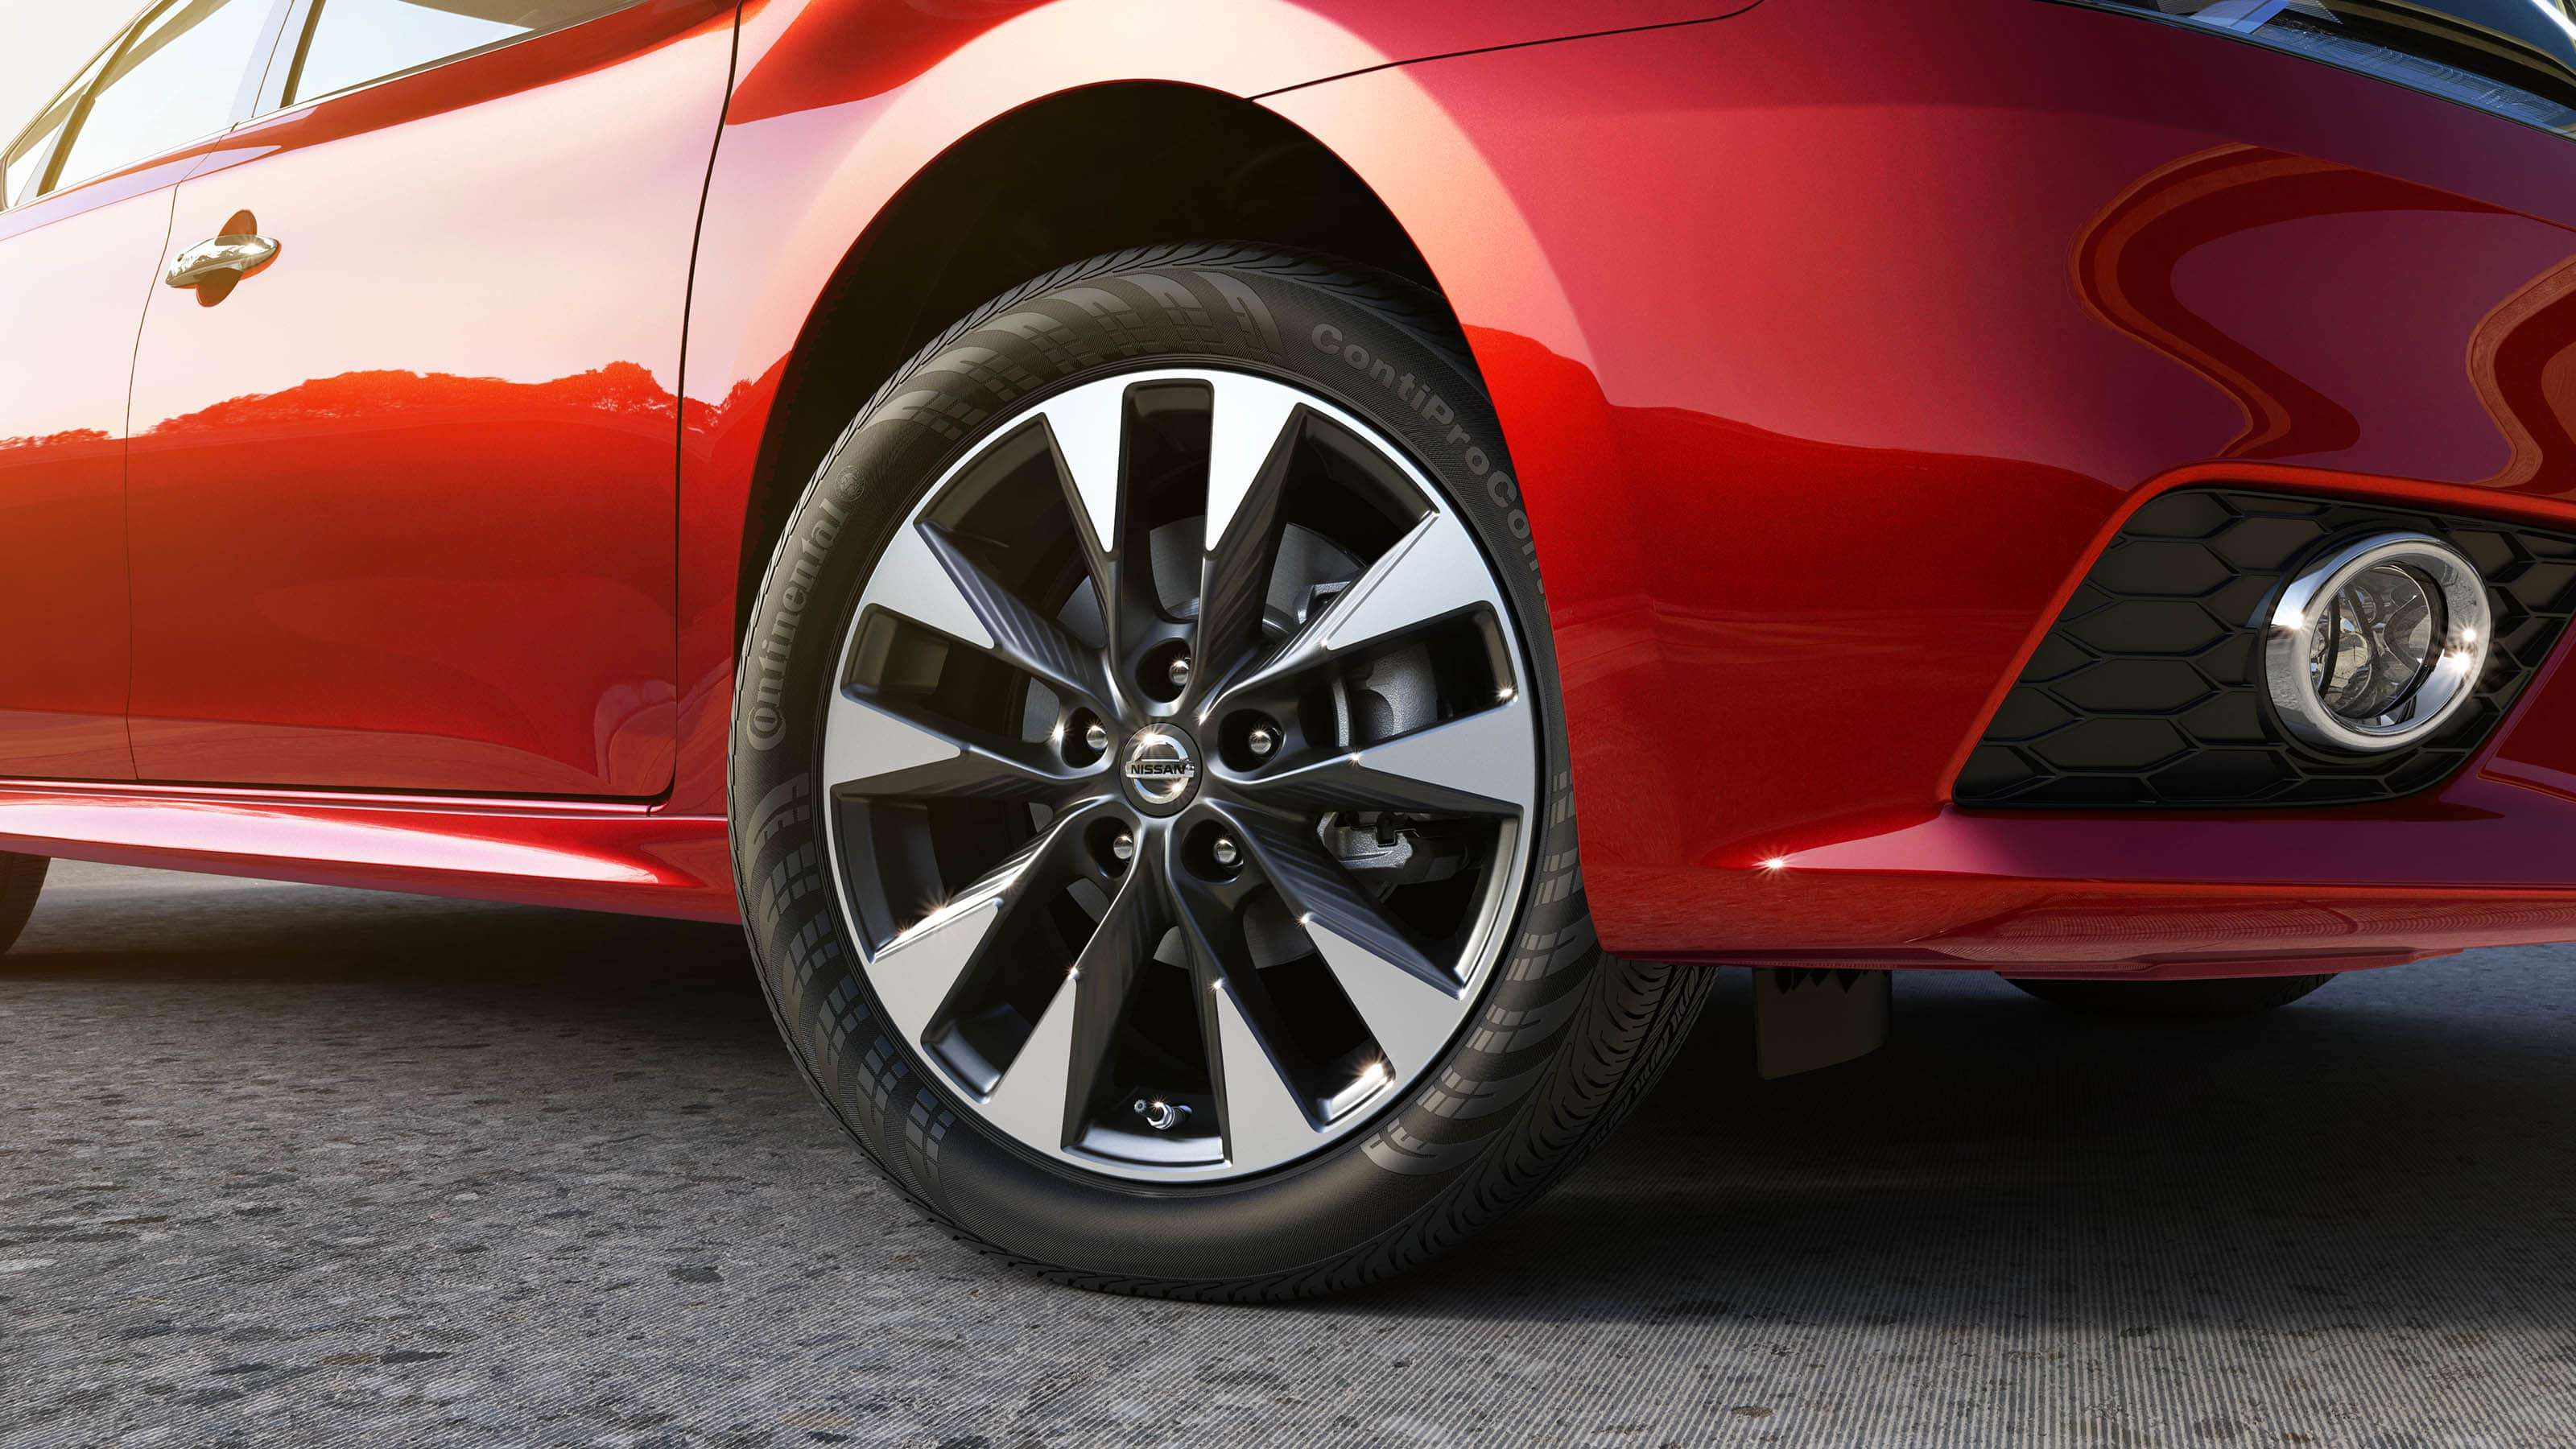 New 2019 Nissan Sentra 17 inch Alloy Wheels